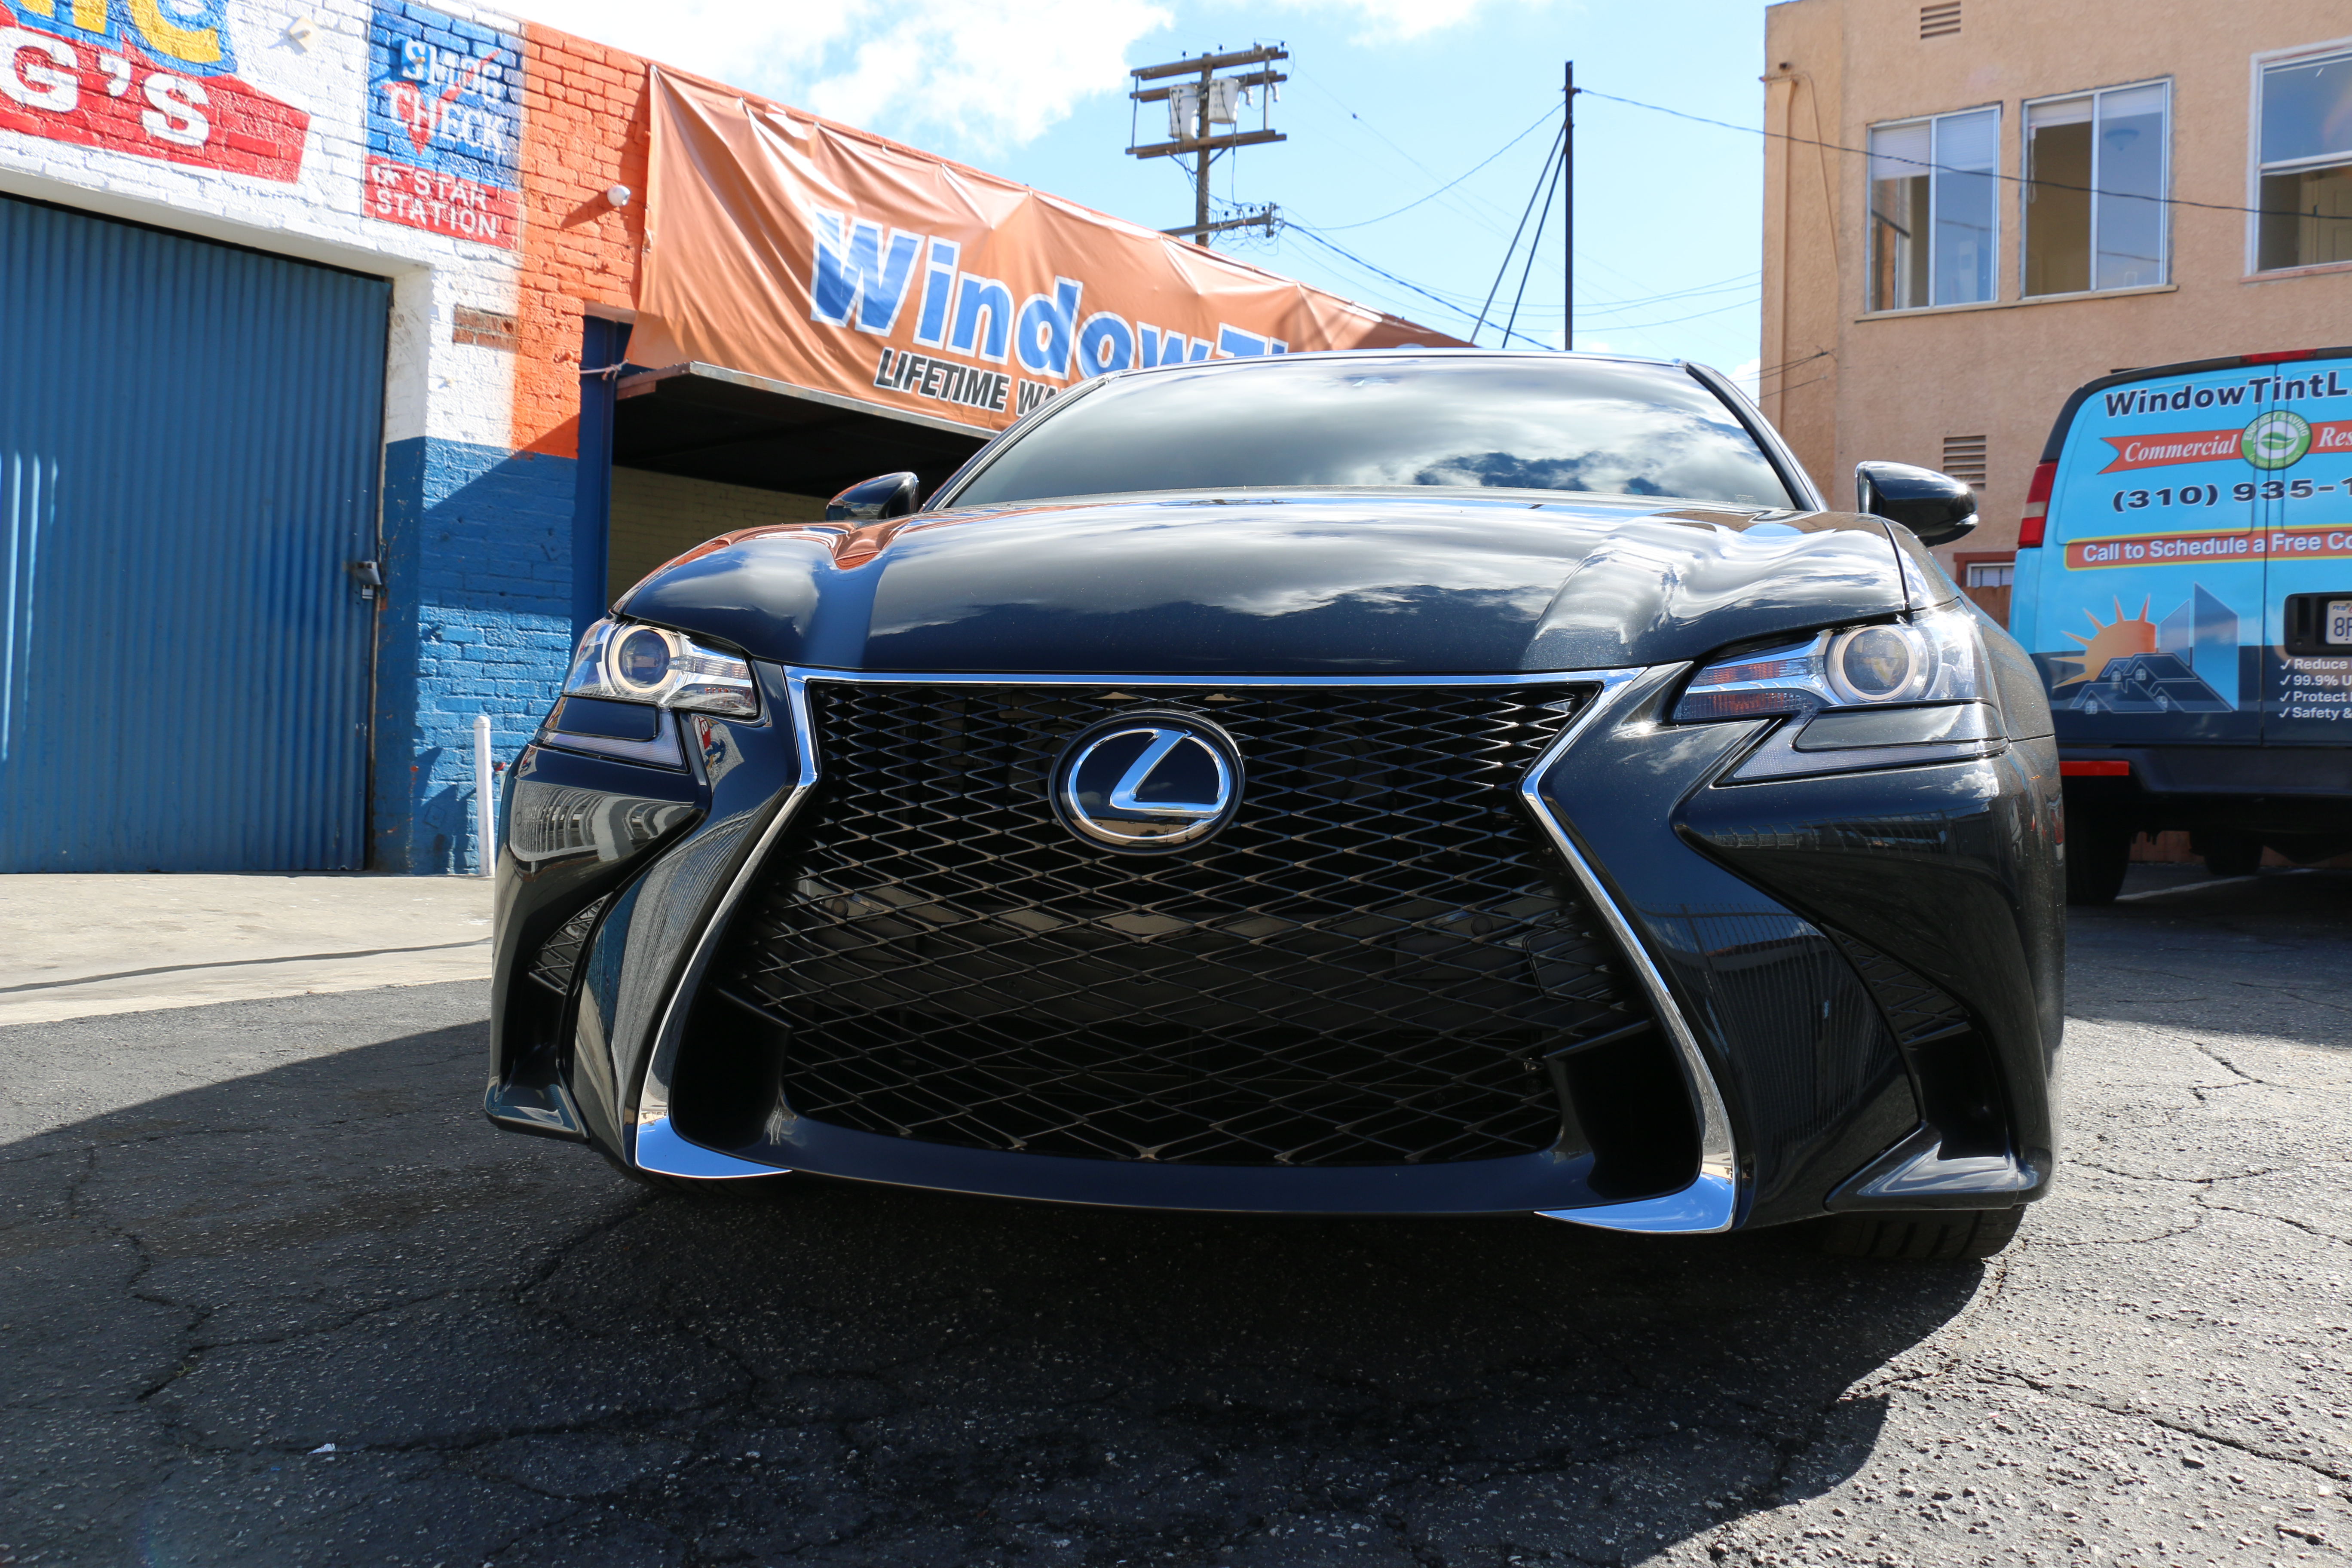 Window Tint for Lexus GS350 WindowTintz